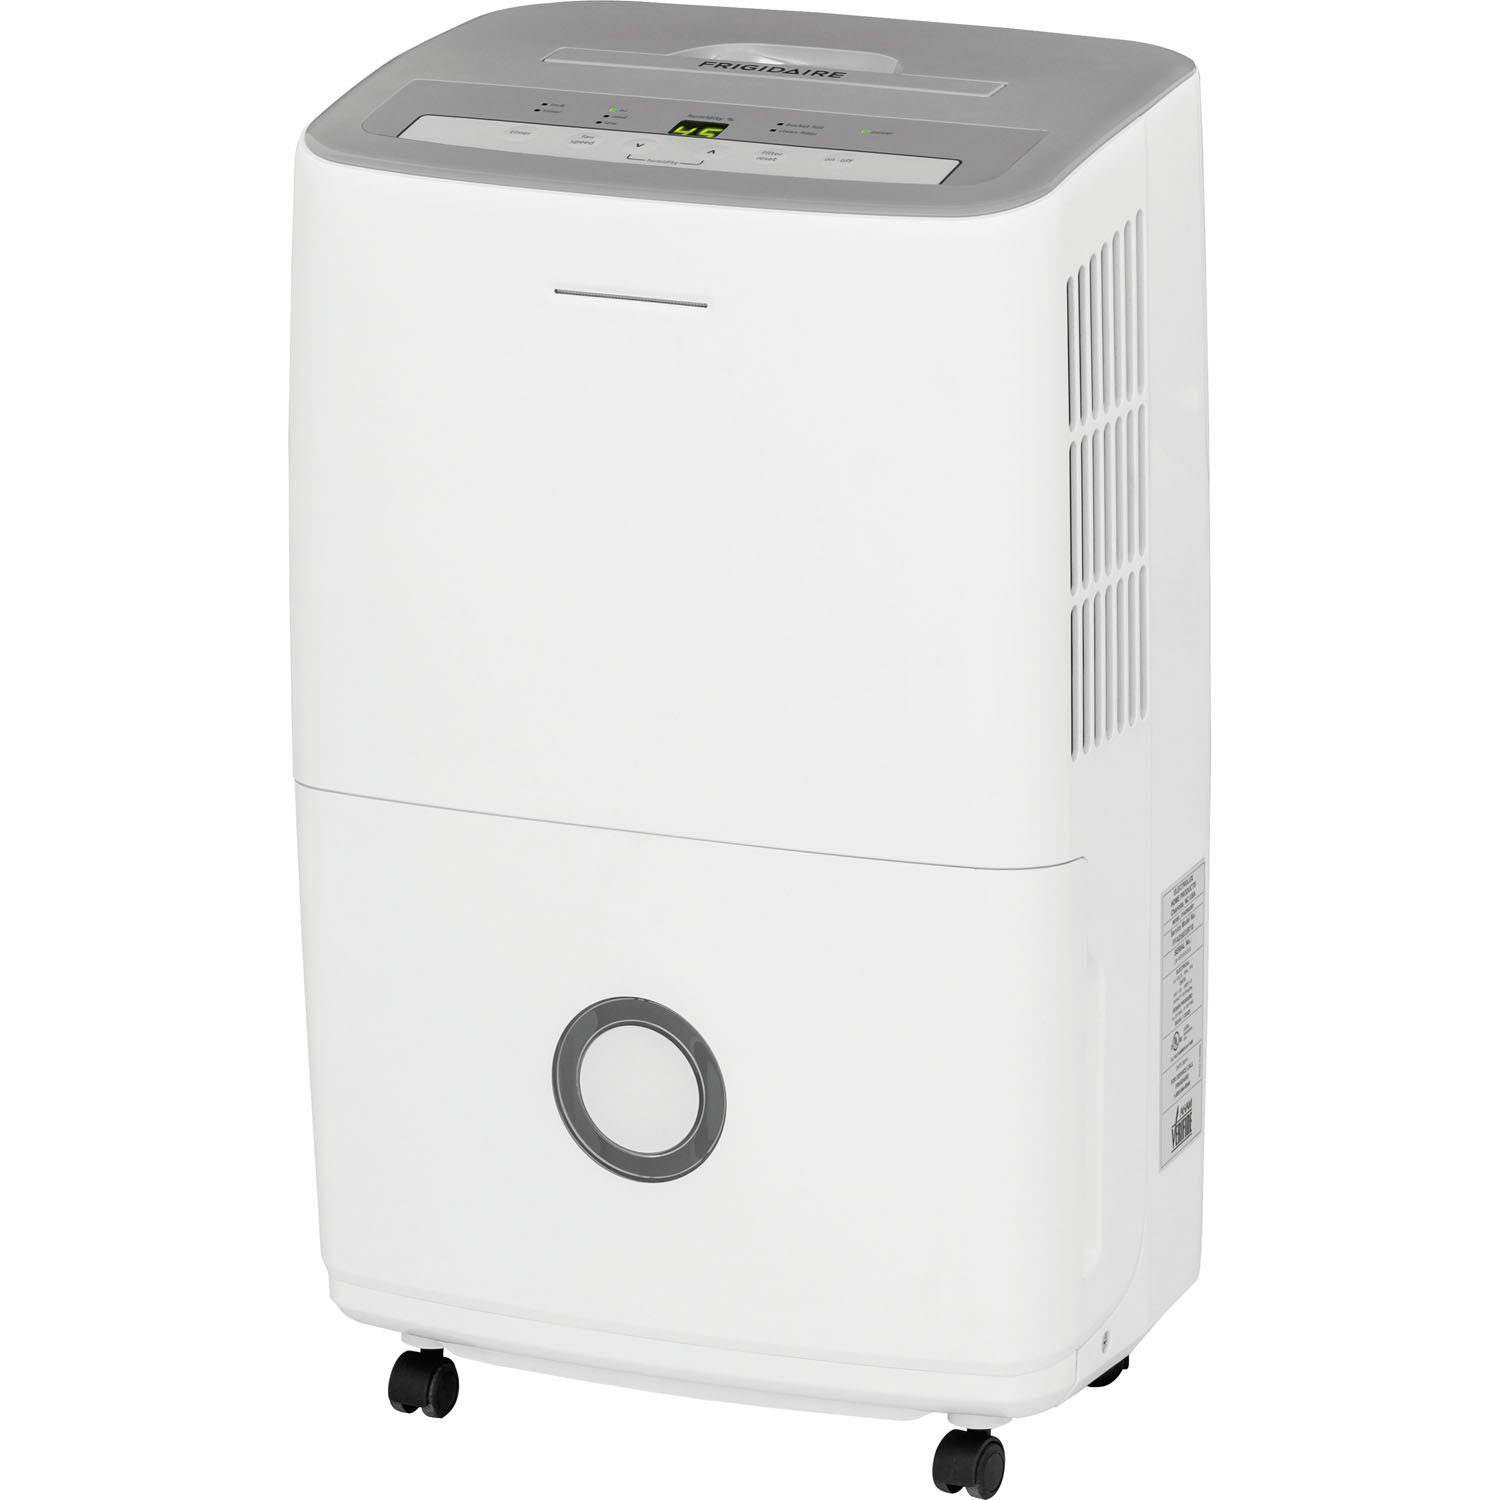 Frigidaire 70-Pint Dehumidifier with Effortless Humidity Control White FFAD7033R1